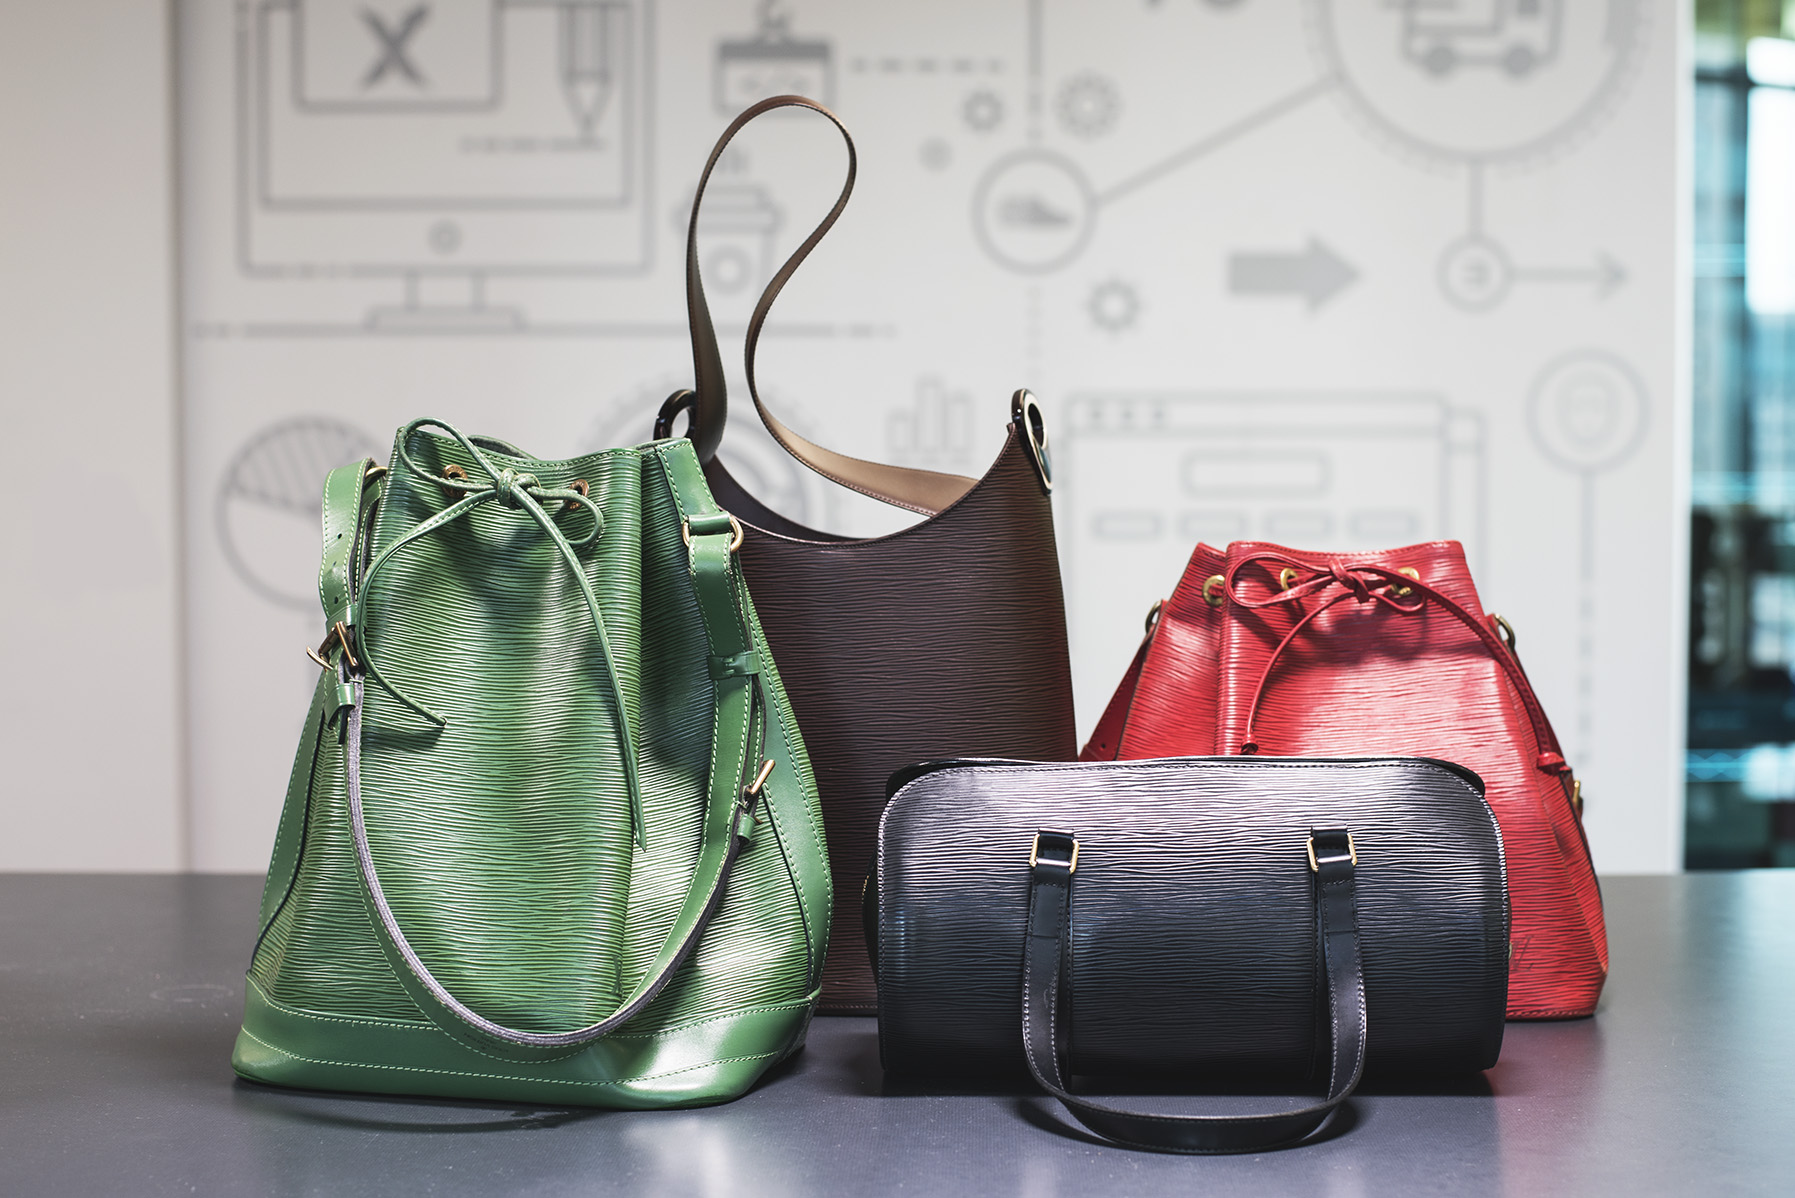 cffe4aca Do You Want $50 Off Your First Handbag Purchase? Yes, You Do ...